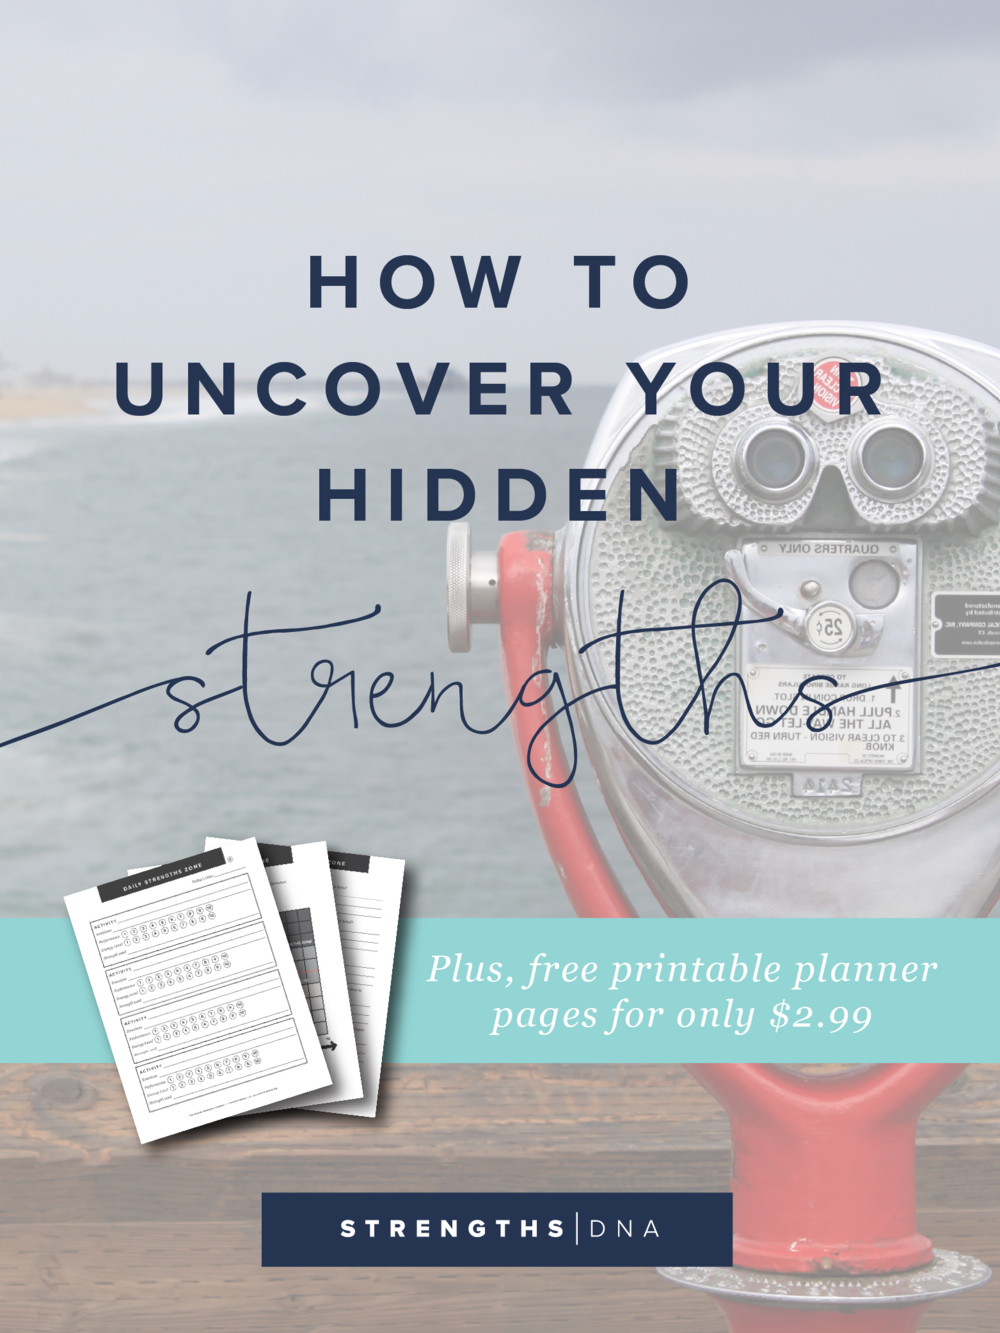 Uncover Your Hidden Strengths + Printable Planner Pages for Only $2.99